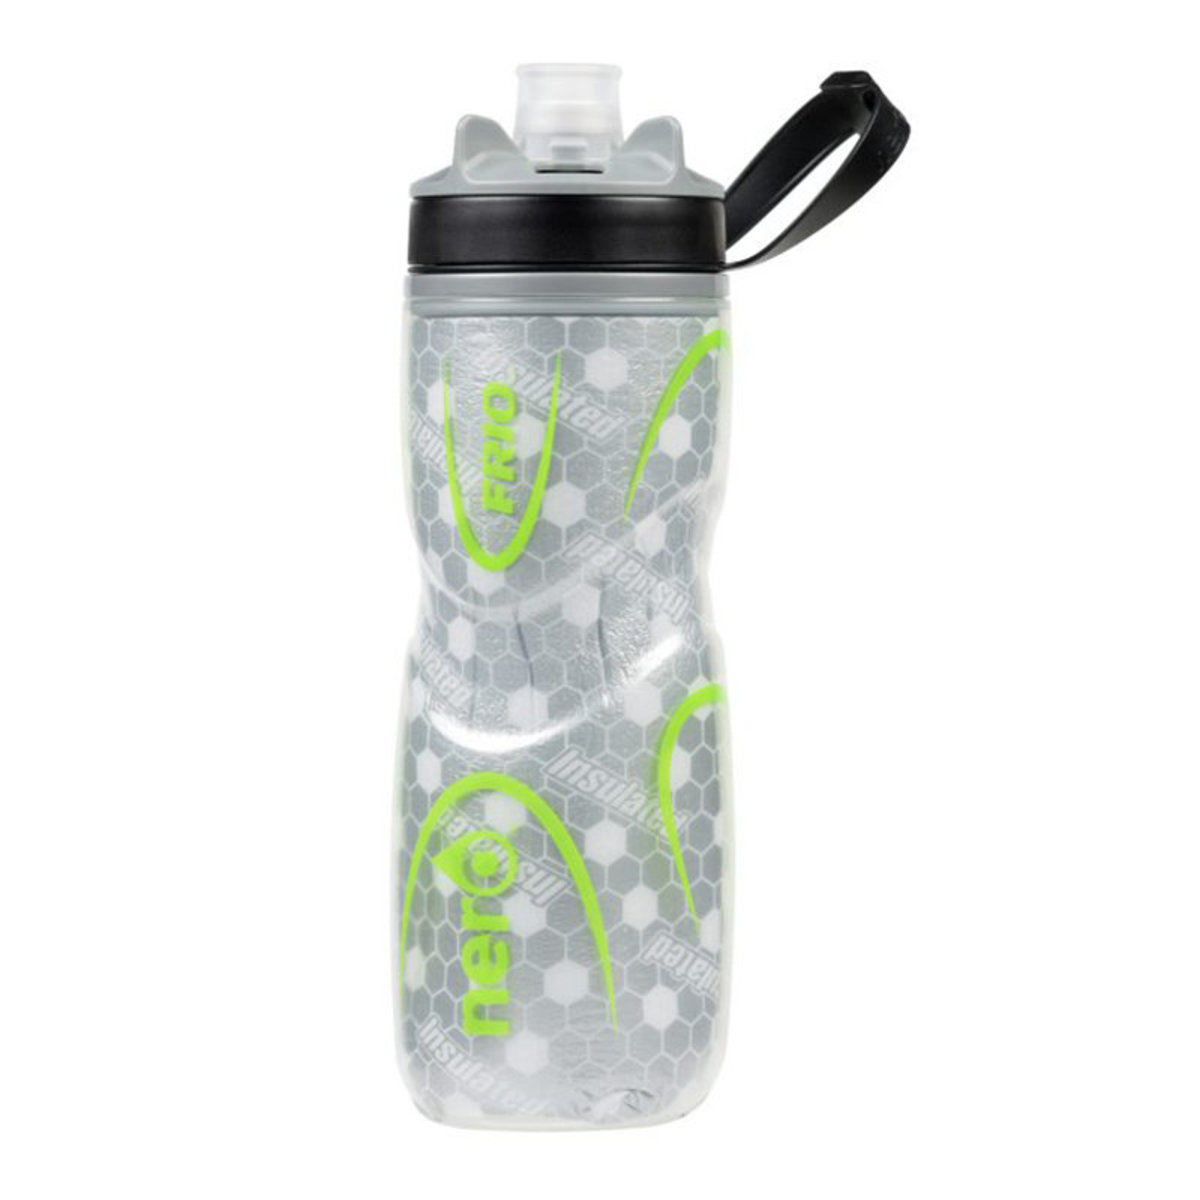 FRIO Insulated Water Bottle (21oz)